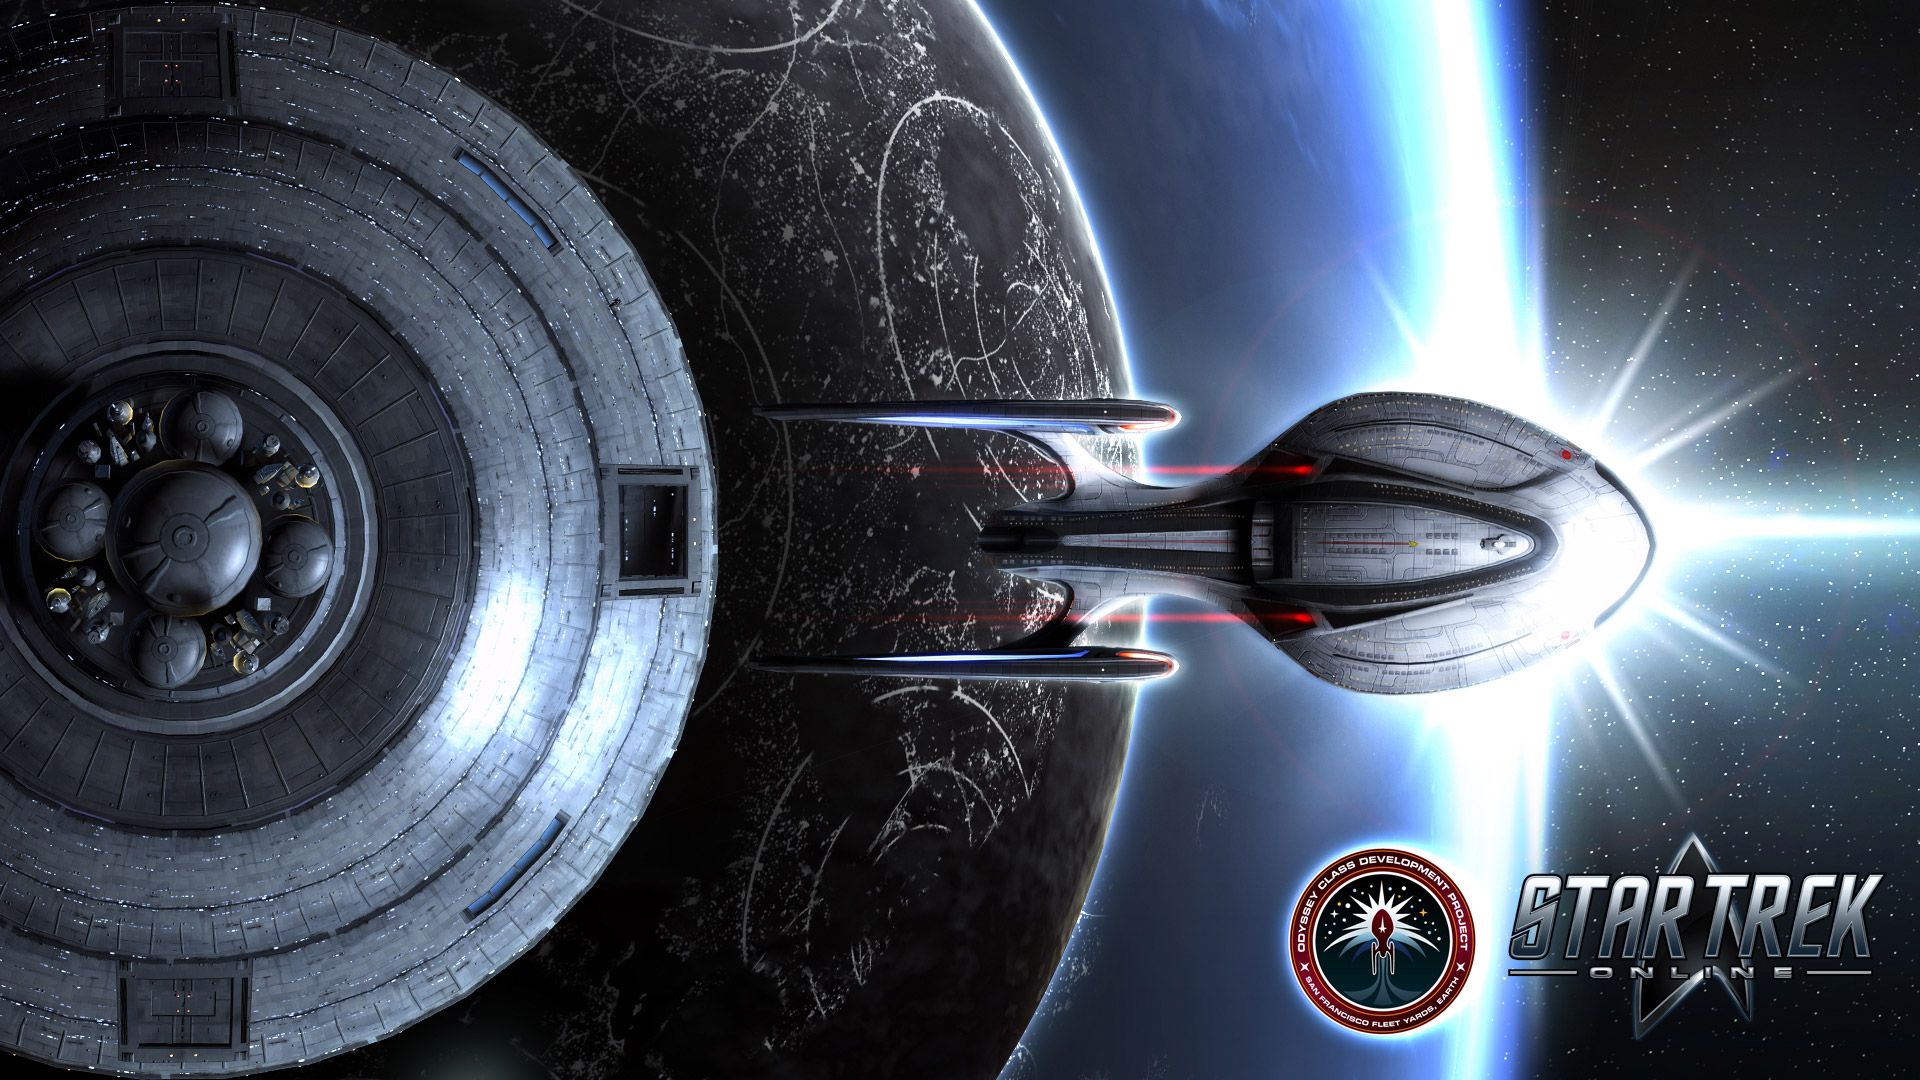 Star Trek Online Wallpaper in 1920x1080